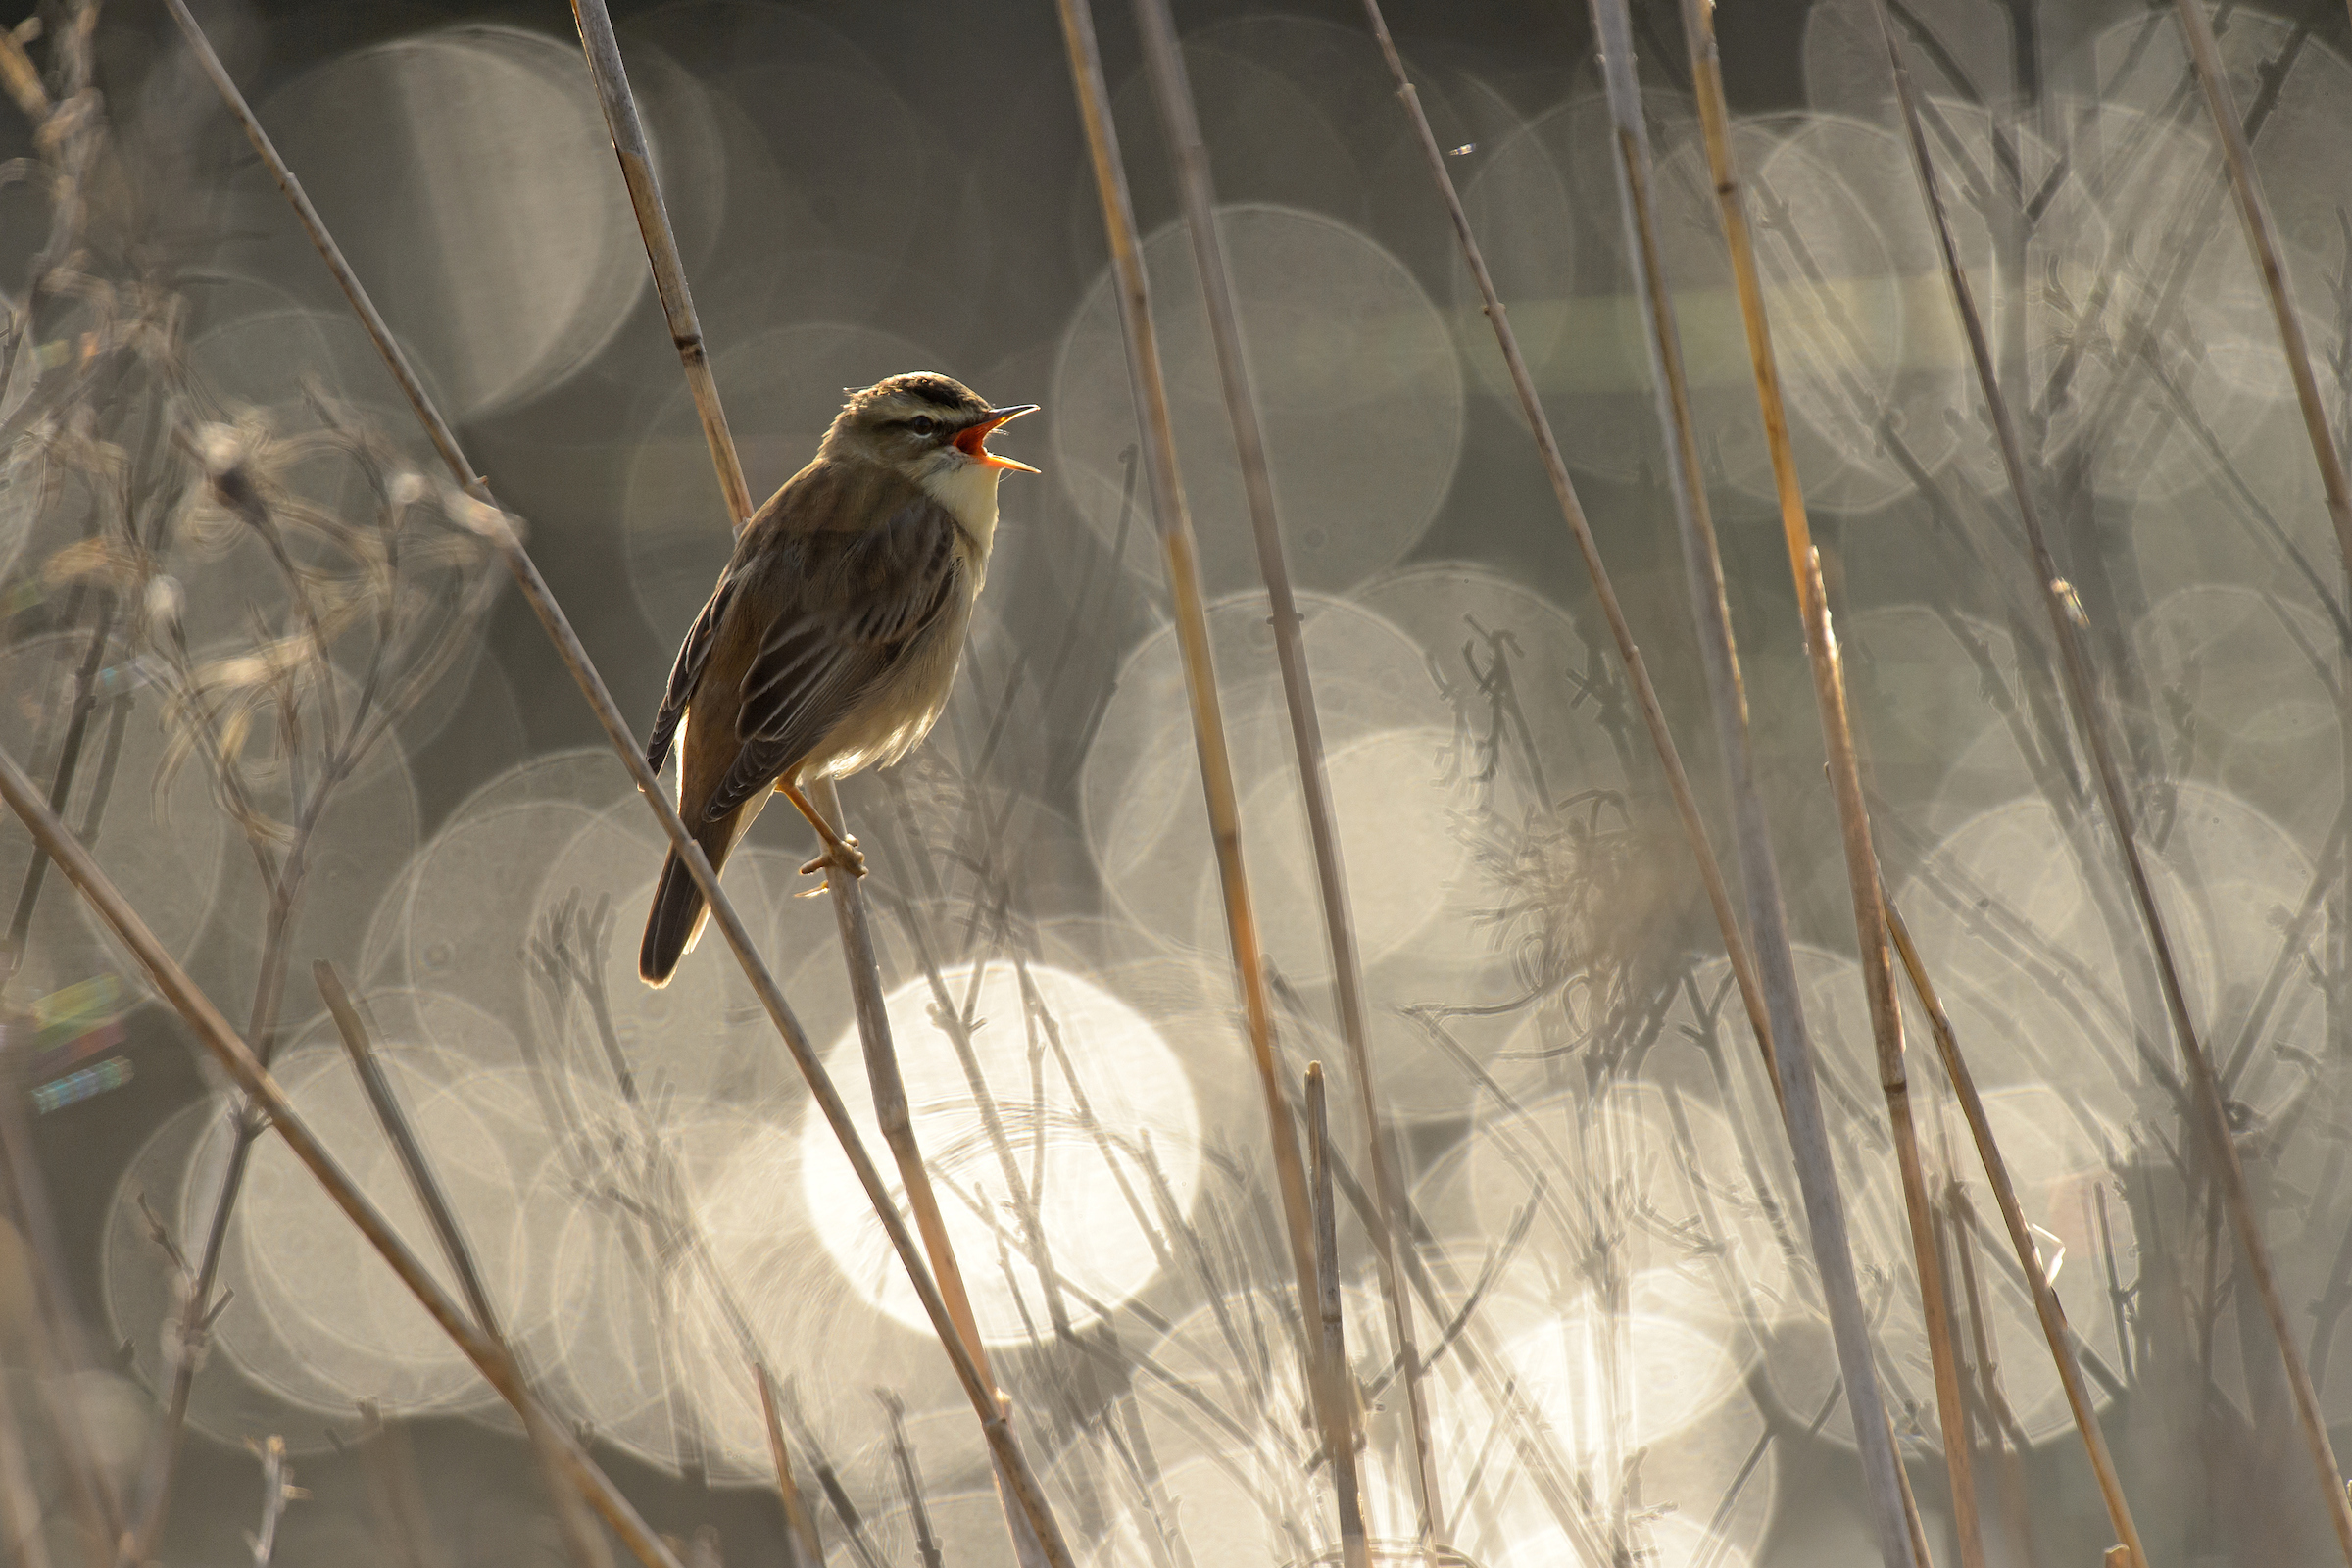 Sedge warbler (Acrocephalus scoenobaenus) singing in reedbed in early morning. Norfolk, UK. May 2015. Nikon D4S, AF-S Nikkor 500mm f4 lens, TC-14EII teleconverter, tripod. 1/5000s @ f5.6, ISO 640.